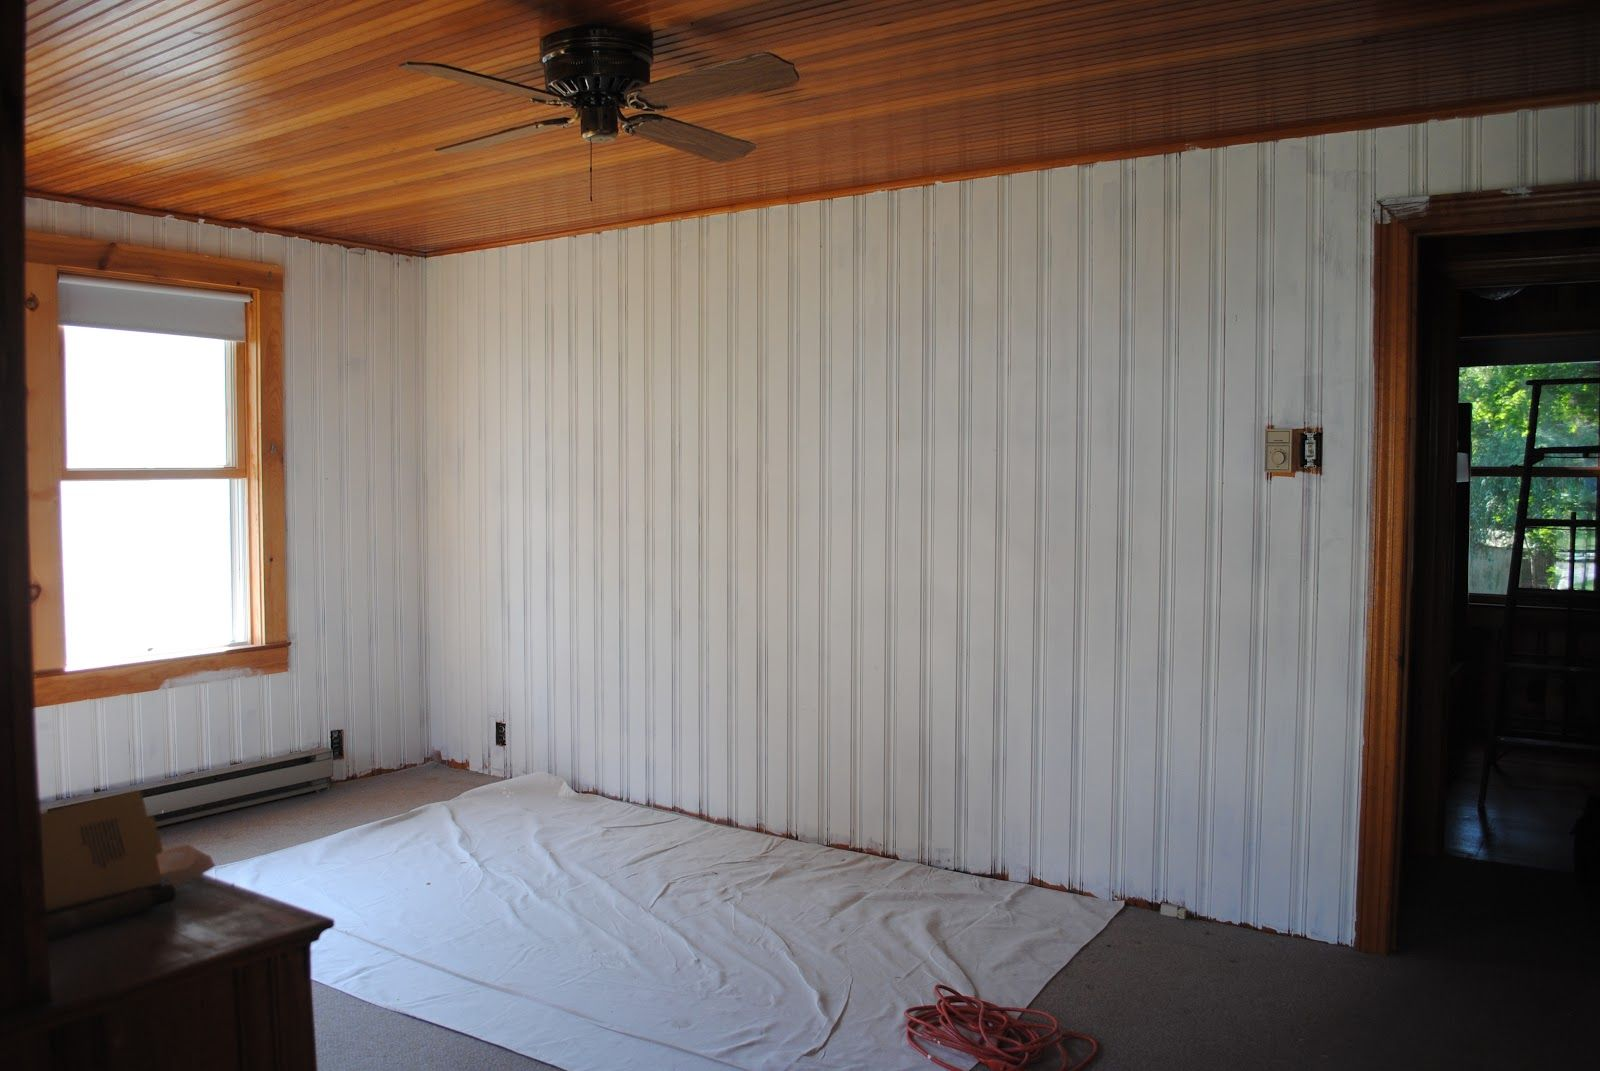 Wood interiors  painting laminate paneling ...